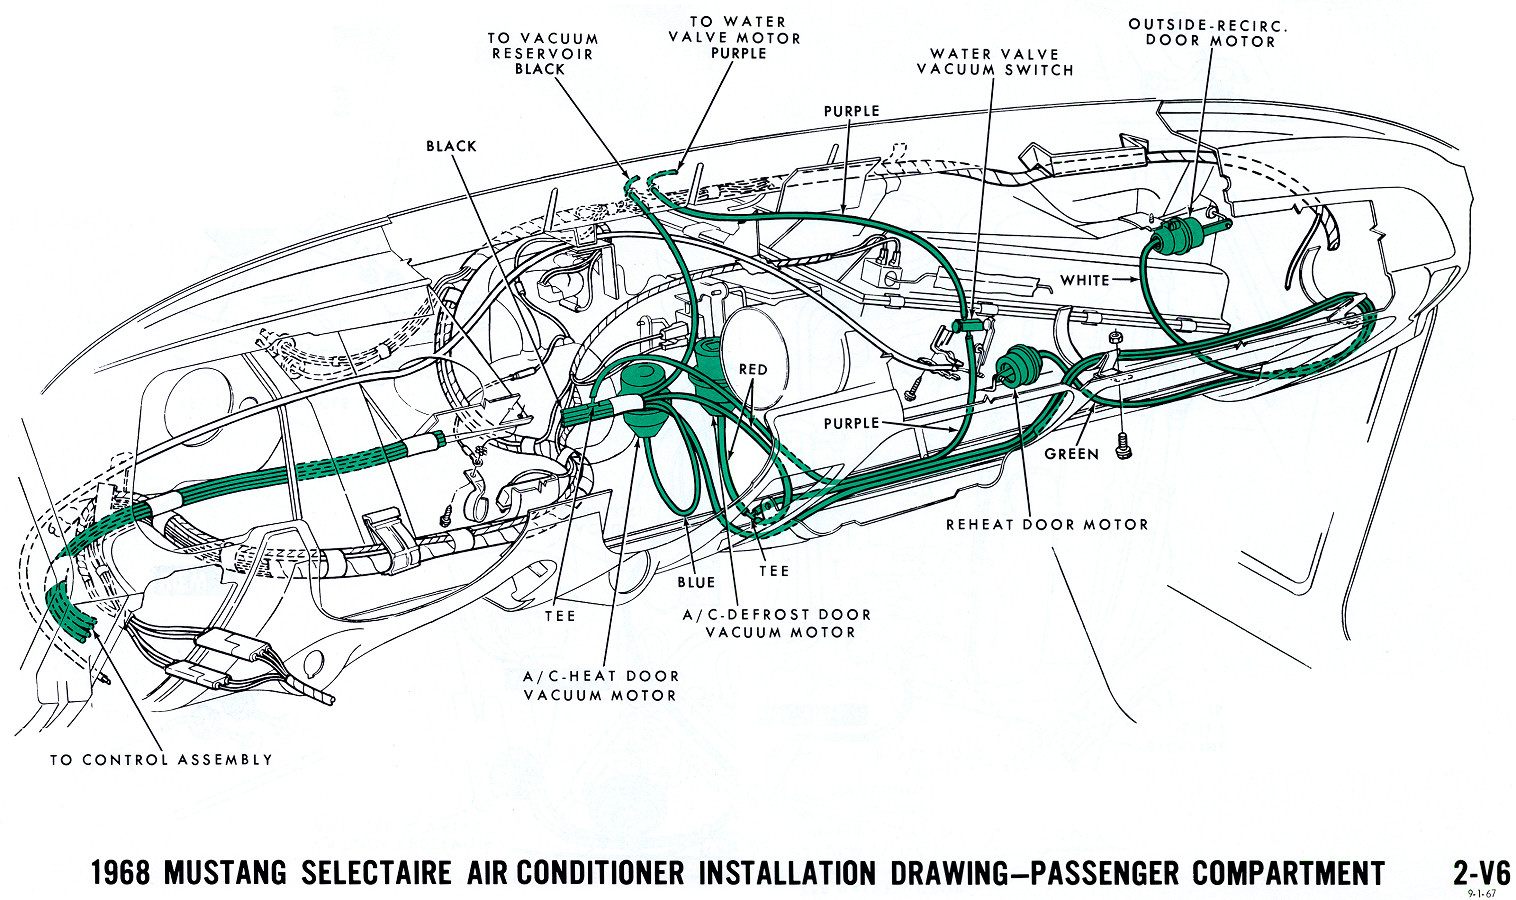 1968 mustang vacuum diagram air conditioning interior 1968 mustang wiring diagrams and vacuum schematics average joe 1969 mustang instrument cluster wiring diagram at n-0.co